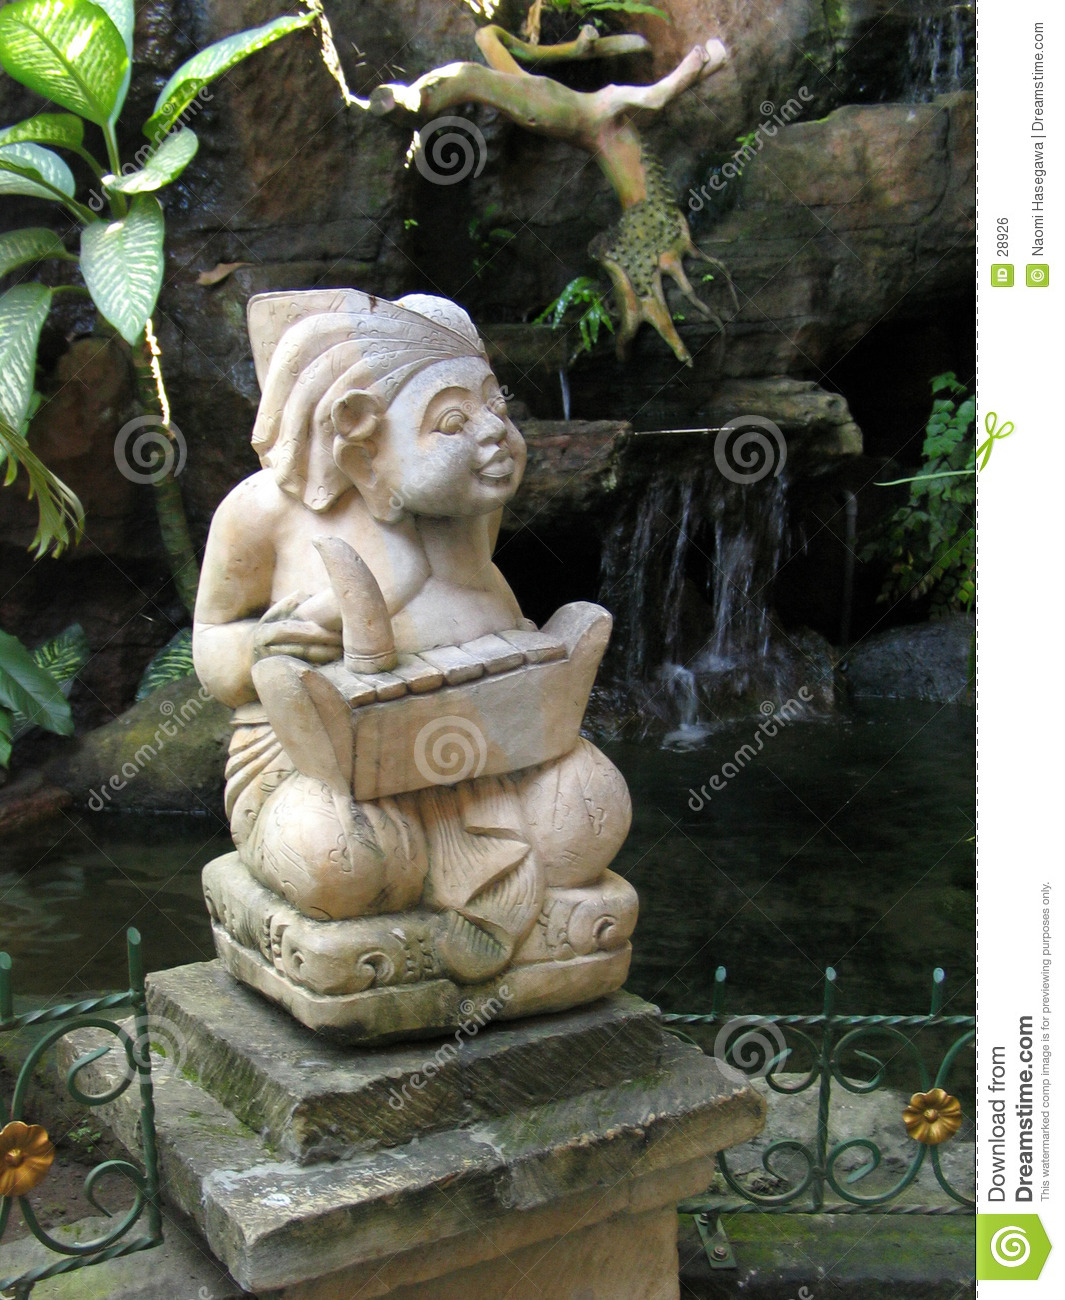 Statue indoue de Balinese